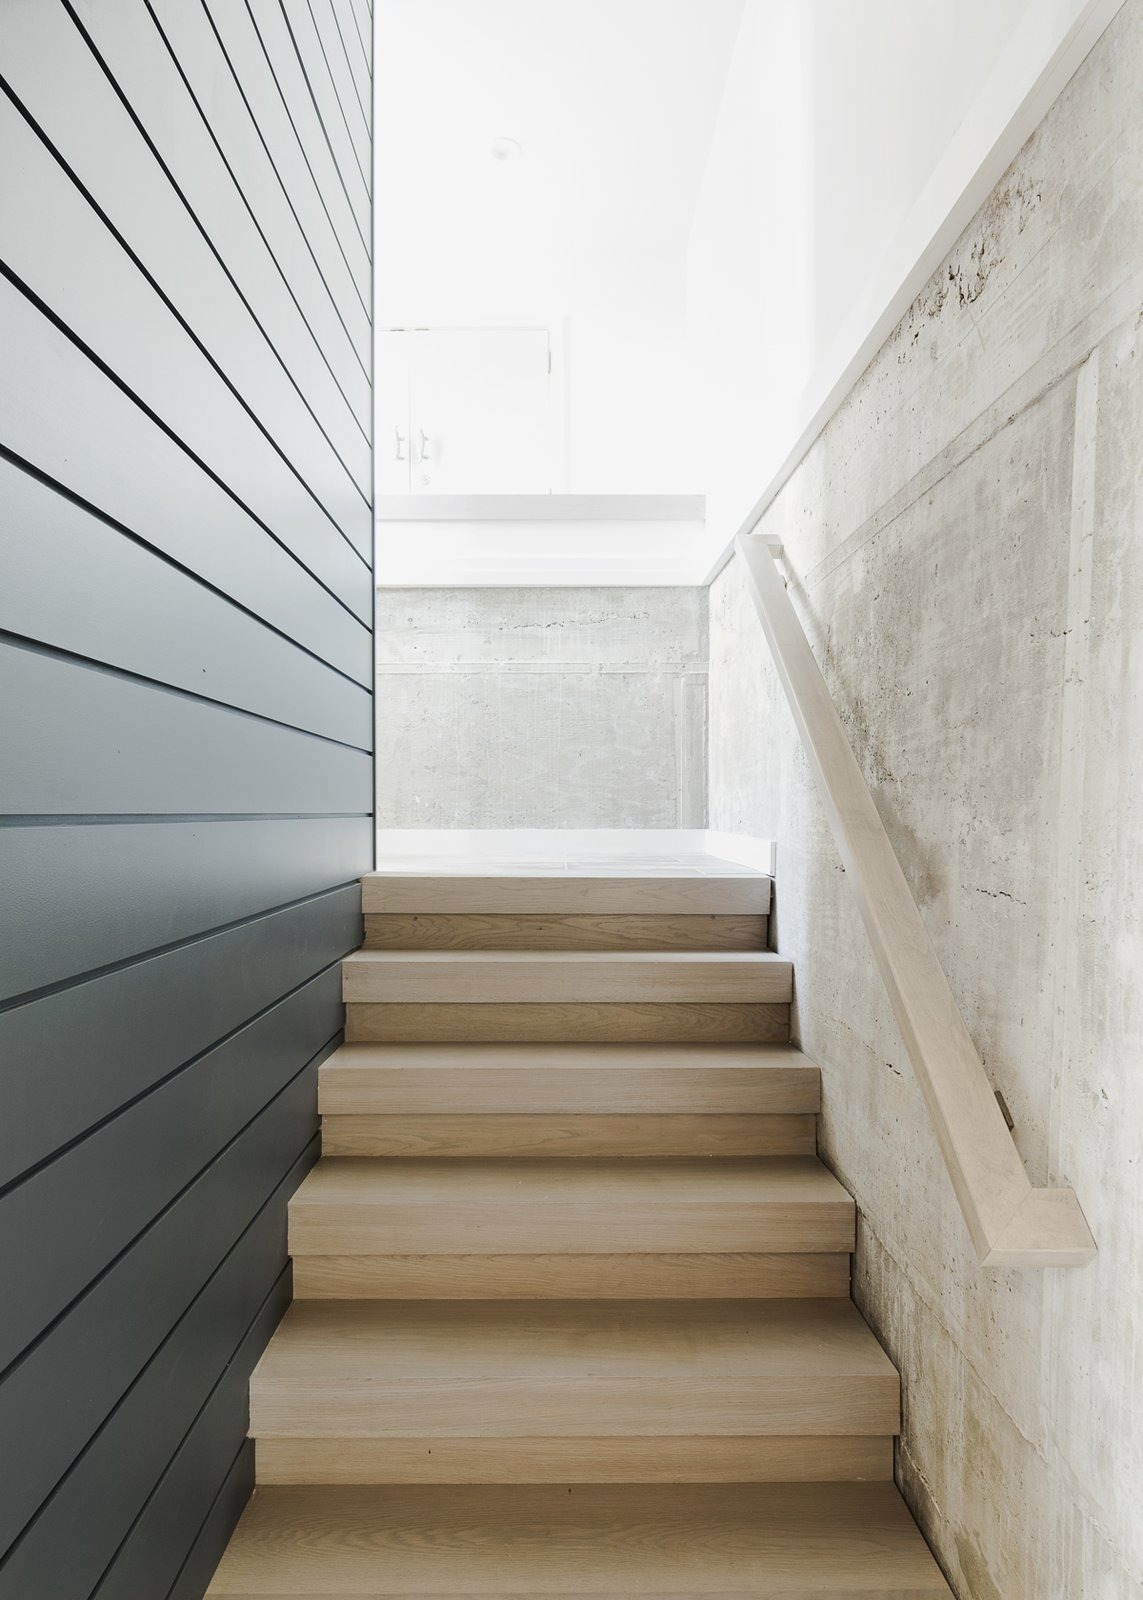 Staircase, Wood Tread, and Wood Railing Entry stair and concrete wall  Sea Bright House by Jeff Jordan Architects